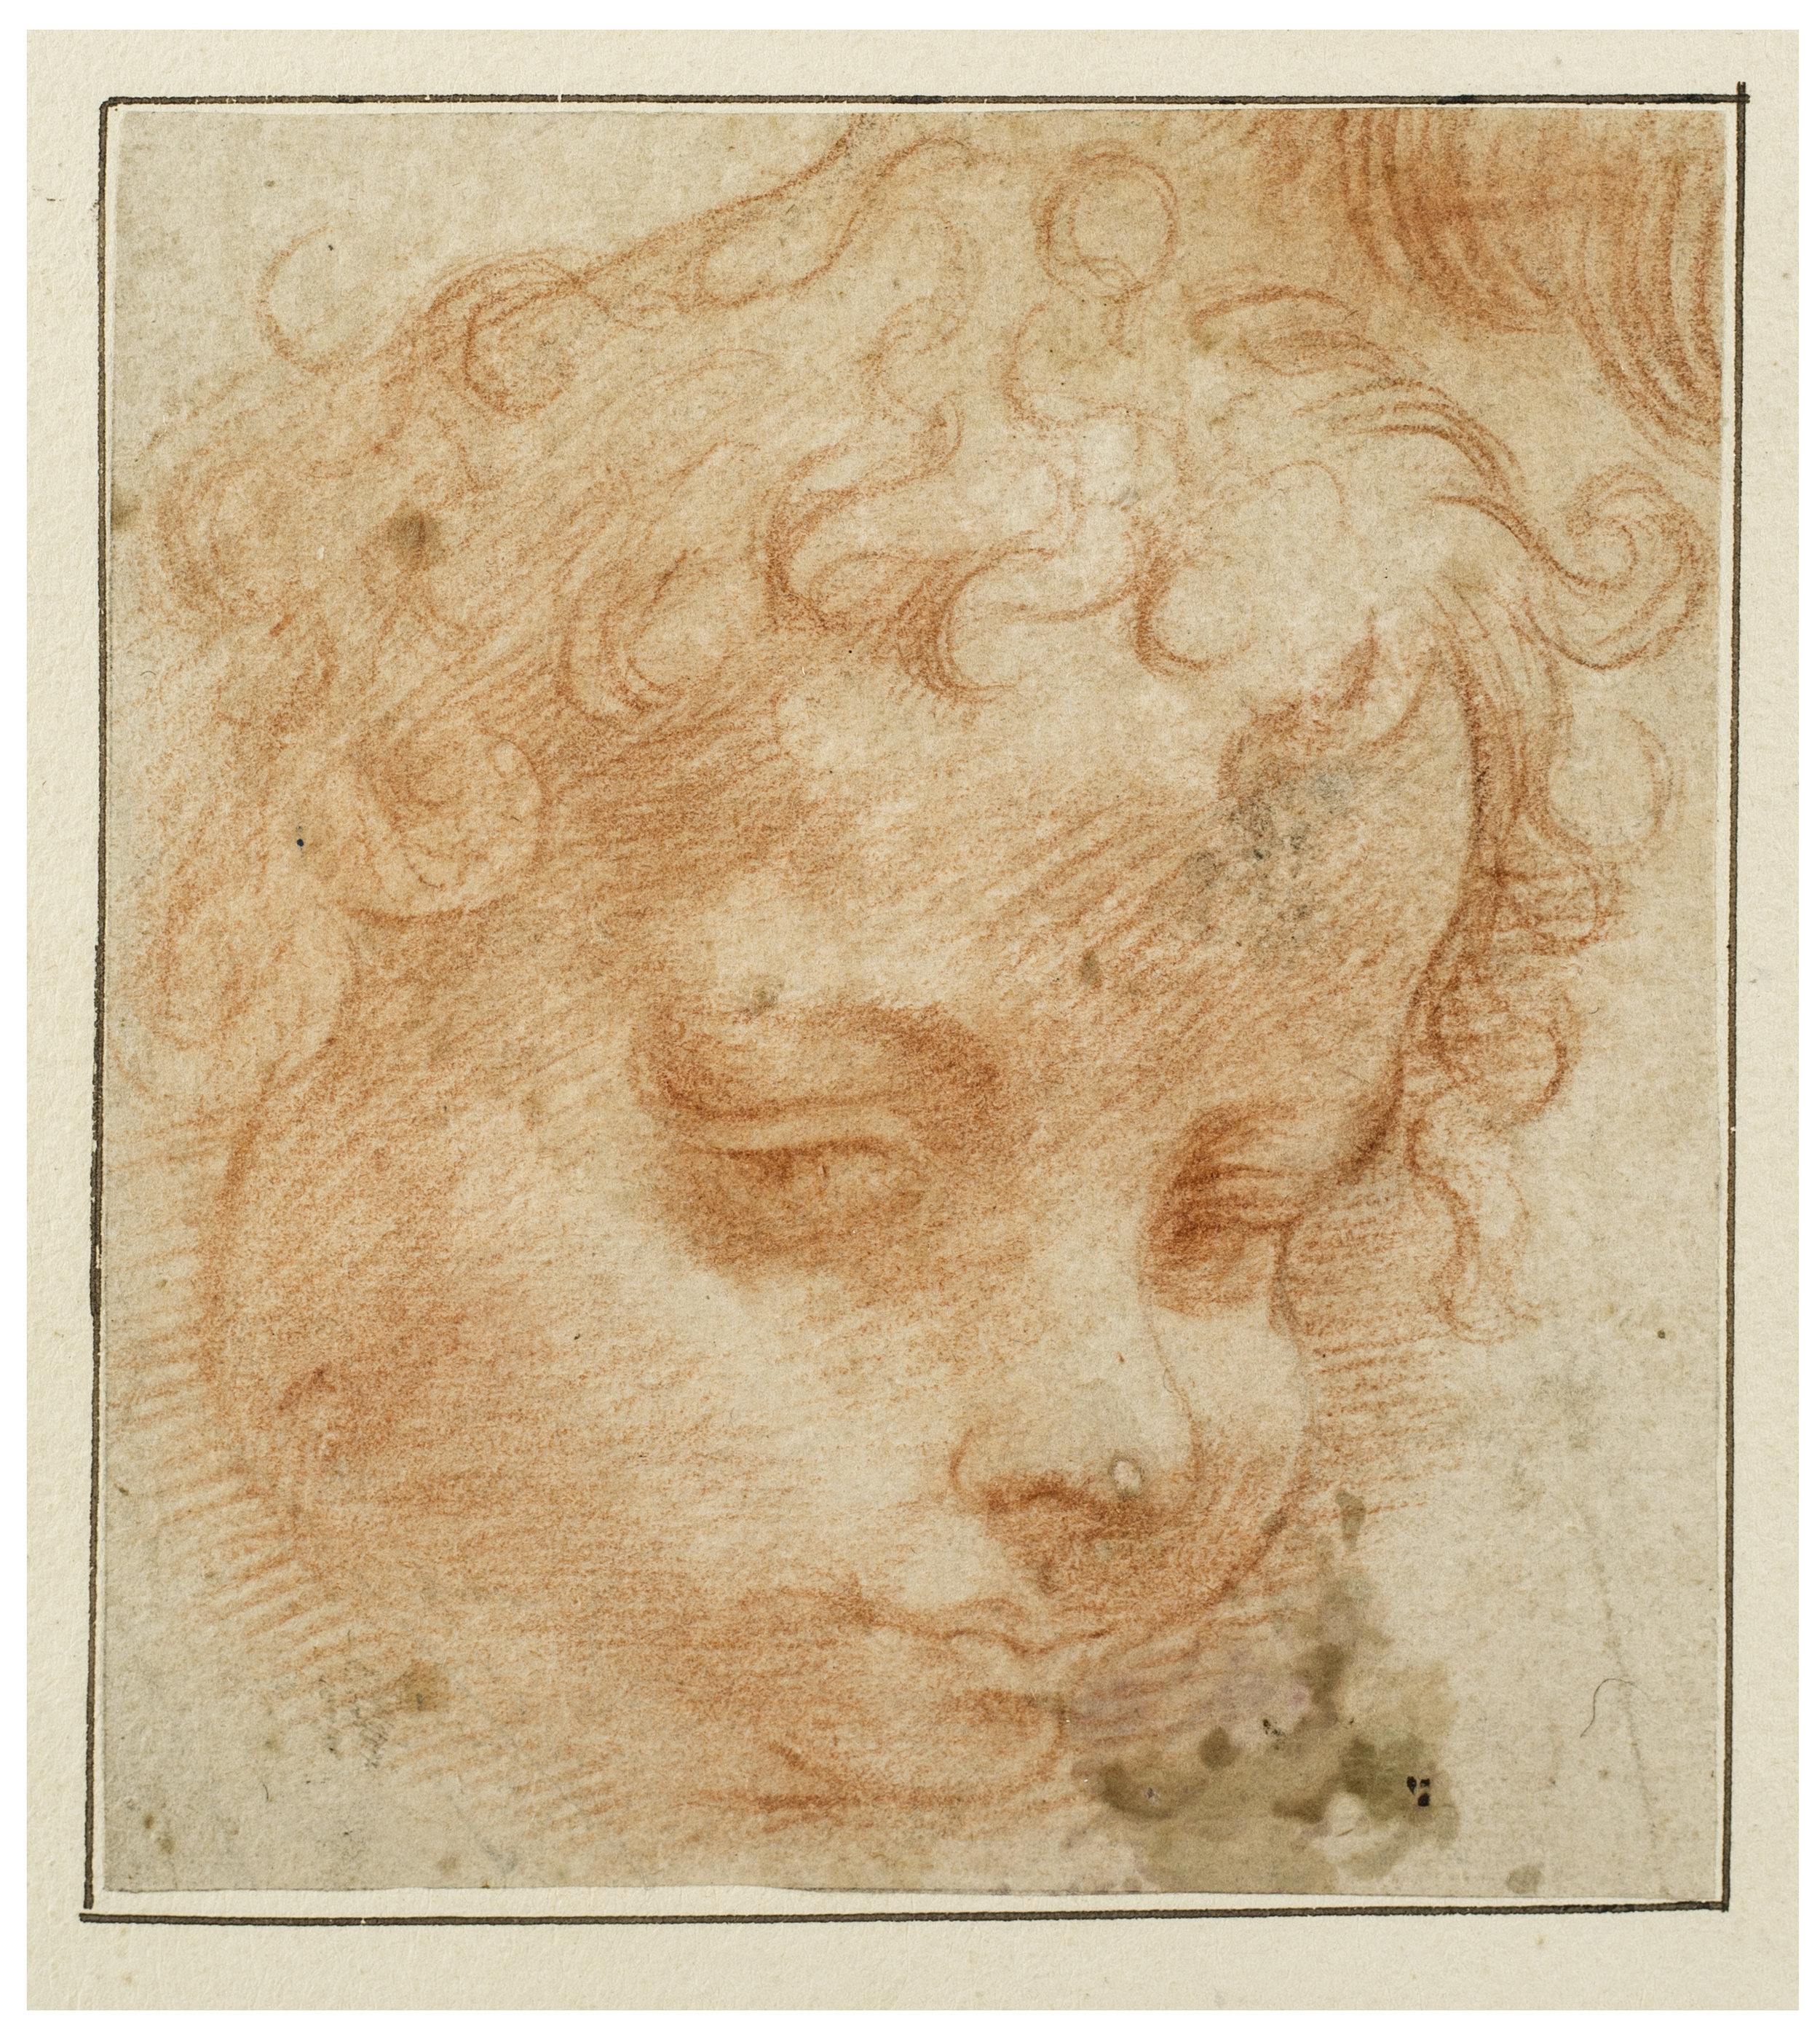 Michelangelo Anselmi,  Head of a Putto